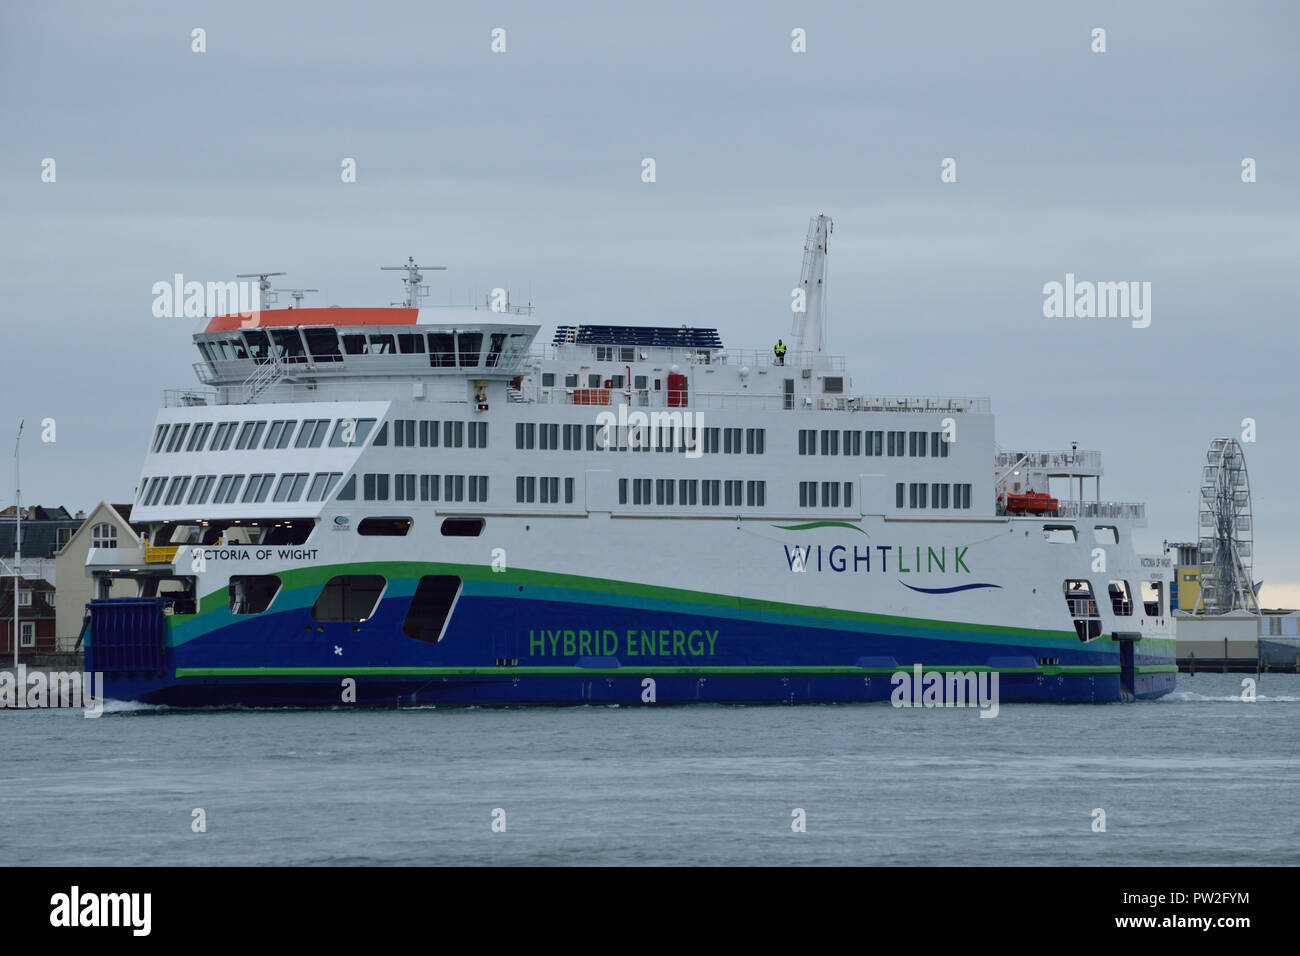 Wightlink's latest hybrid fuel ferry the Victoria of Wight seen operating the Portsmouth to Isle of Wight ferry service across the solent Stock Photo